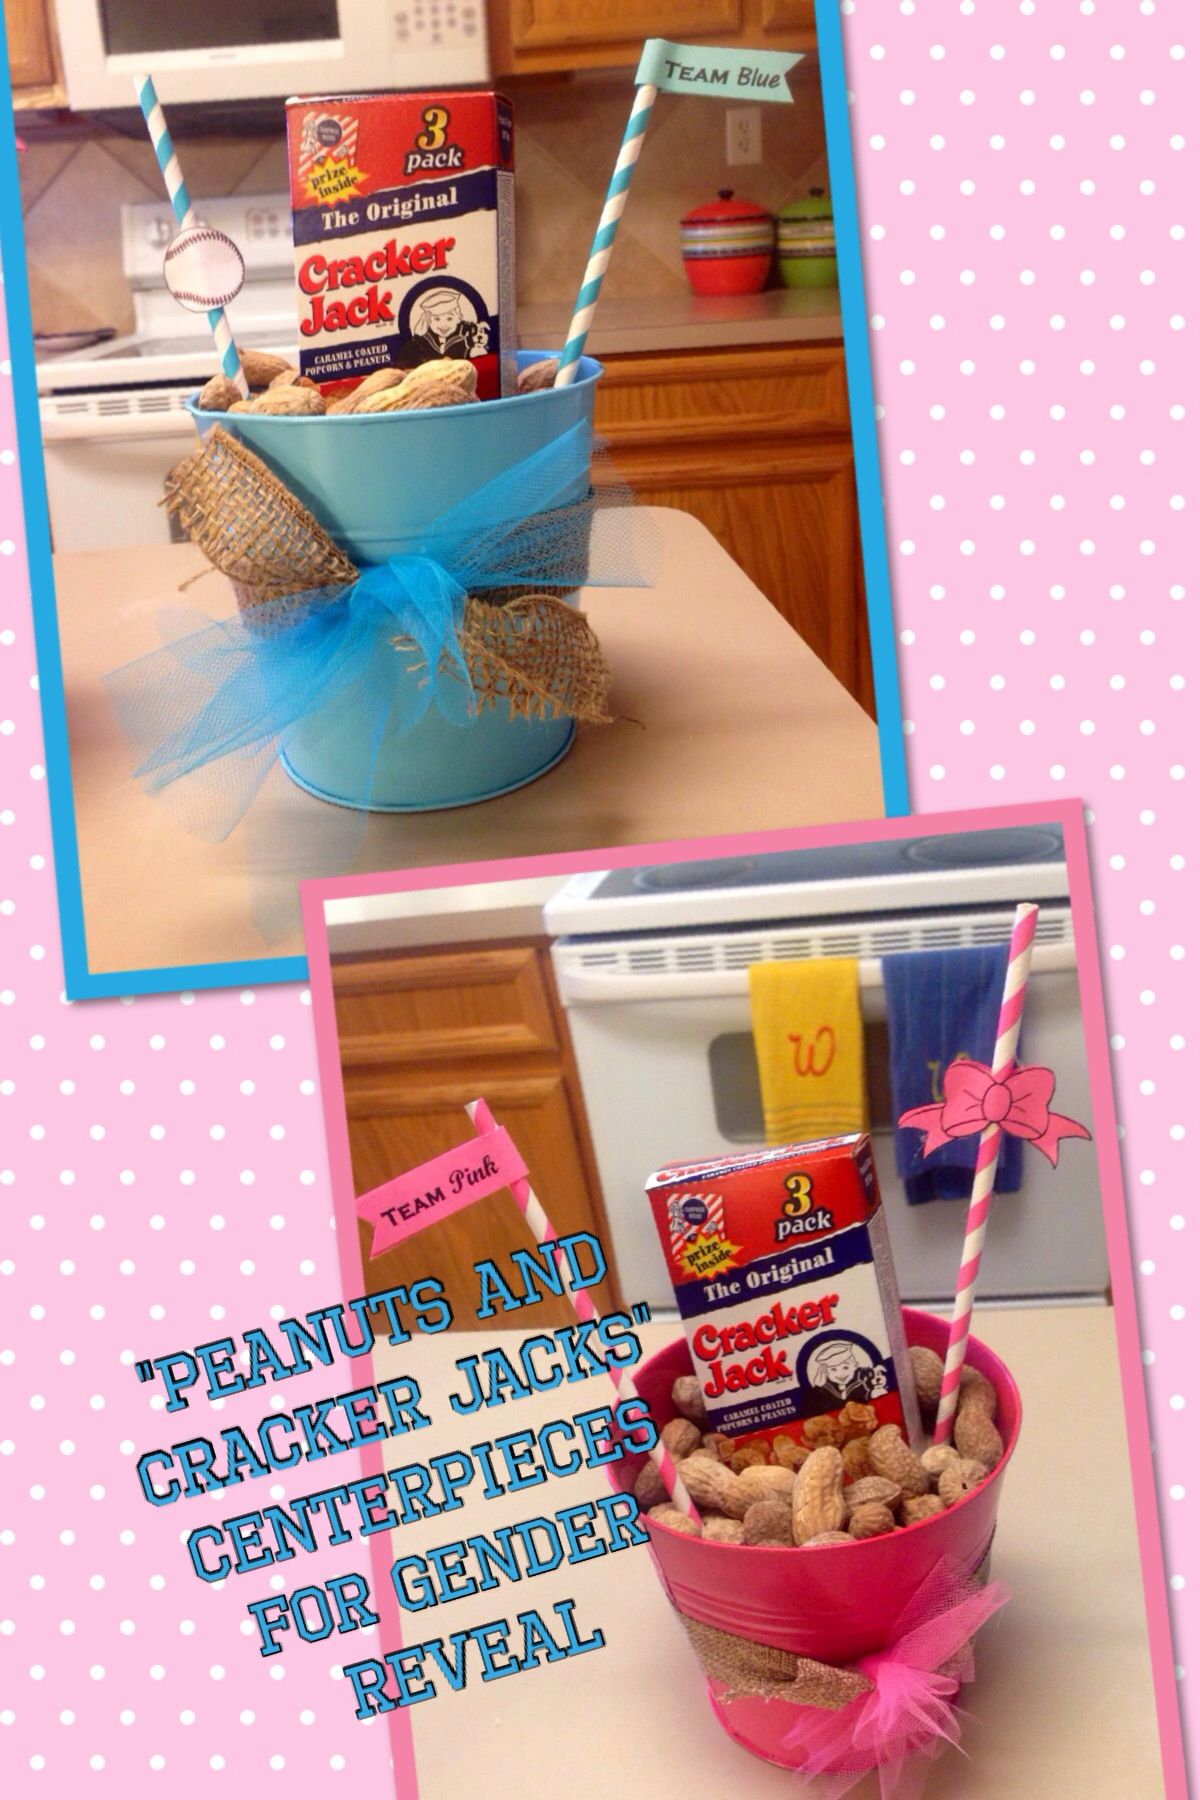 Peanuts Or Cracker Jacks Centerpieces For Our Baseball Or Bows Gender Reveal Party Gender Reveal Party Gender Reveal Party Decorations Gender Reveal